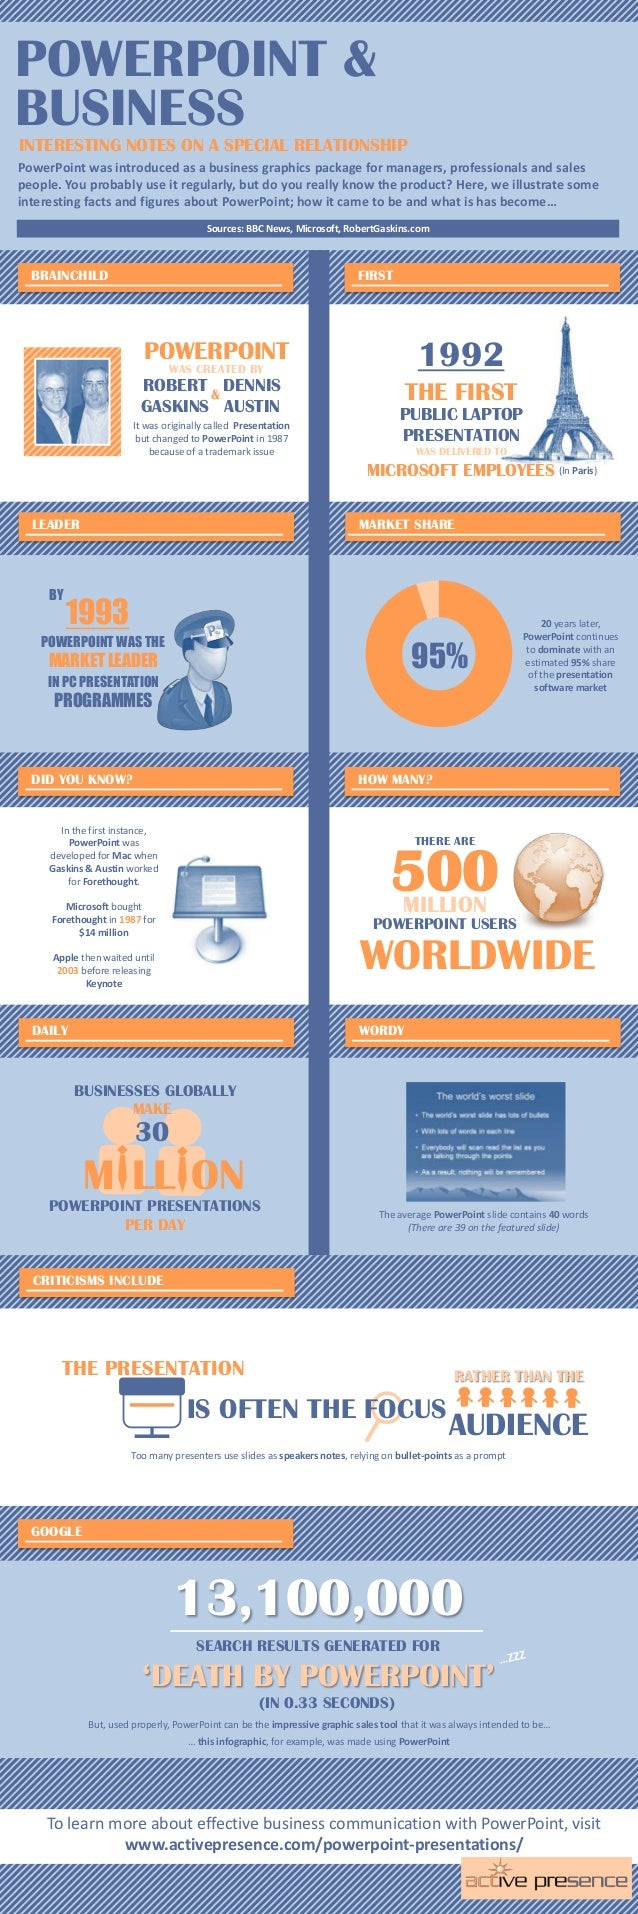 INFOGRAPHIC: PowerPoint and Business